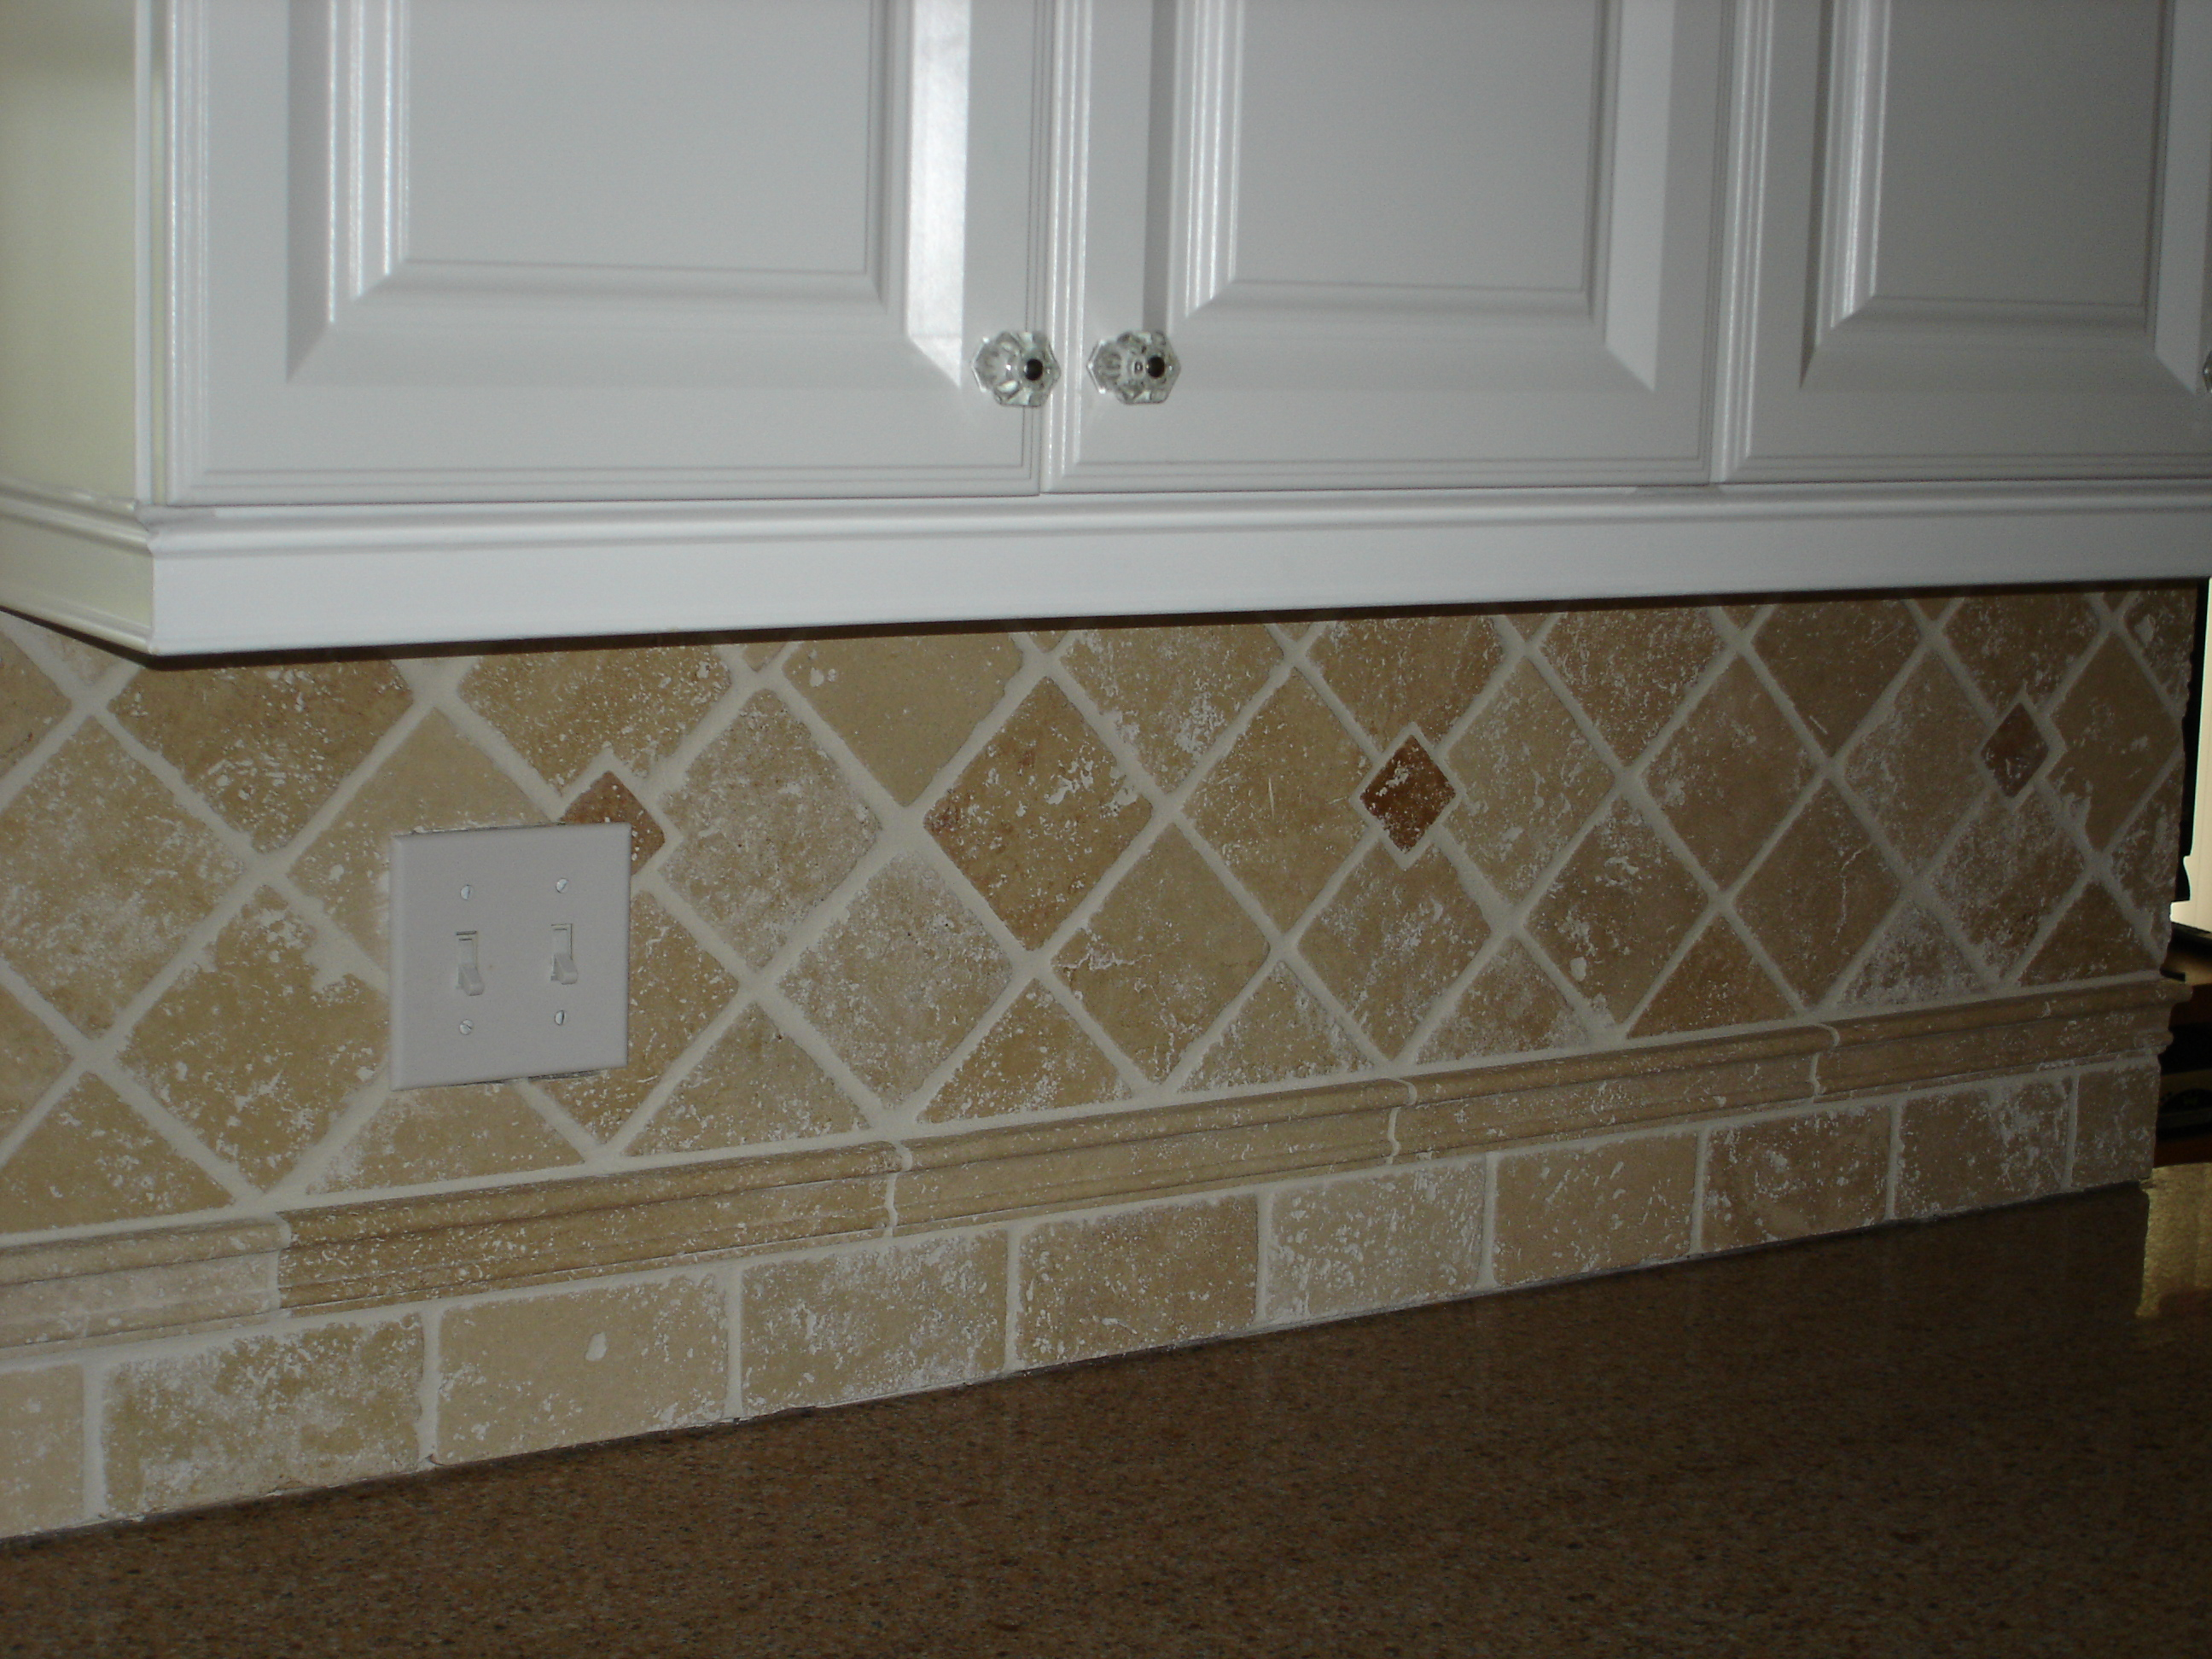 Outstanding Kitchen Backsplash Tile Design Idea 2592 x 1944 · 2098 kB · jpeg